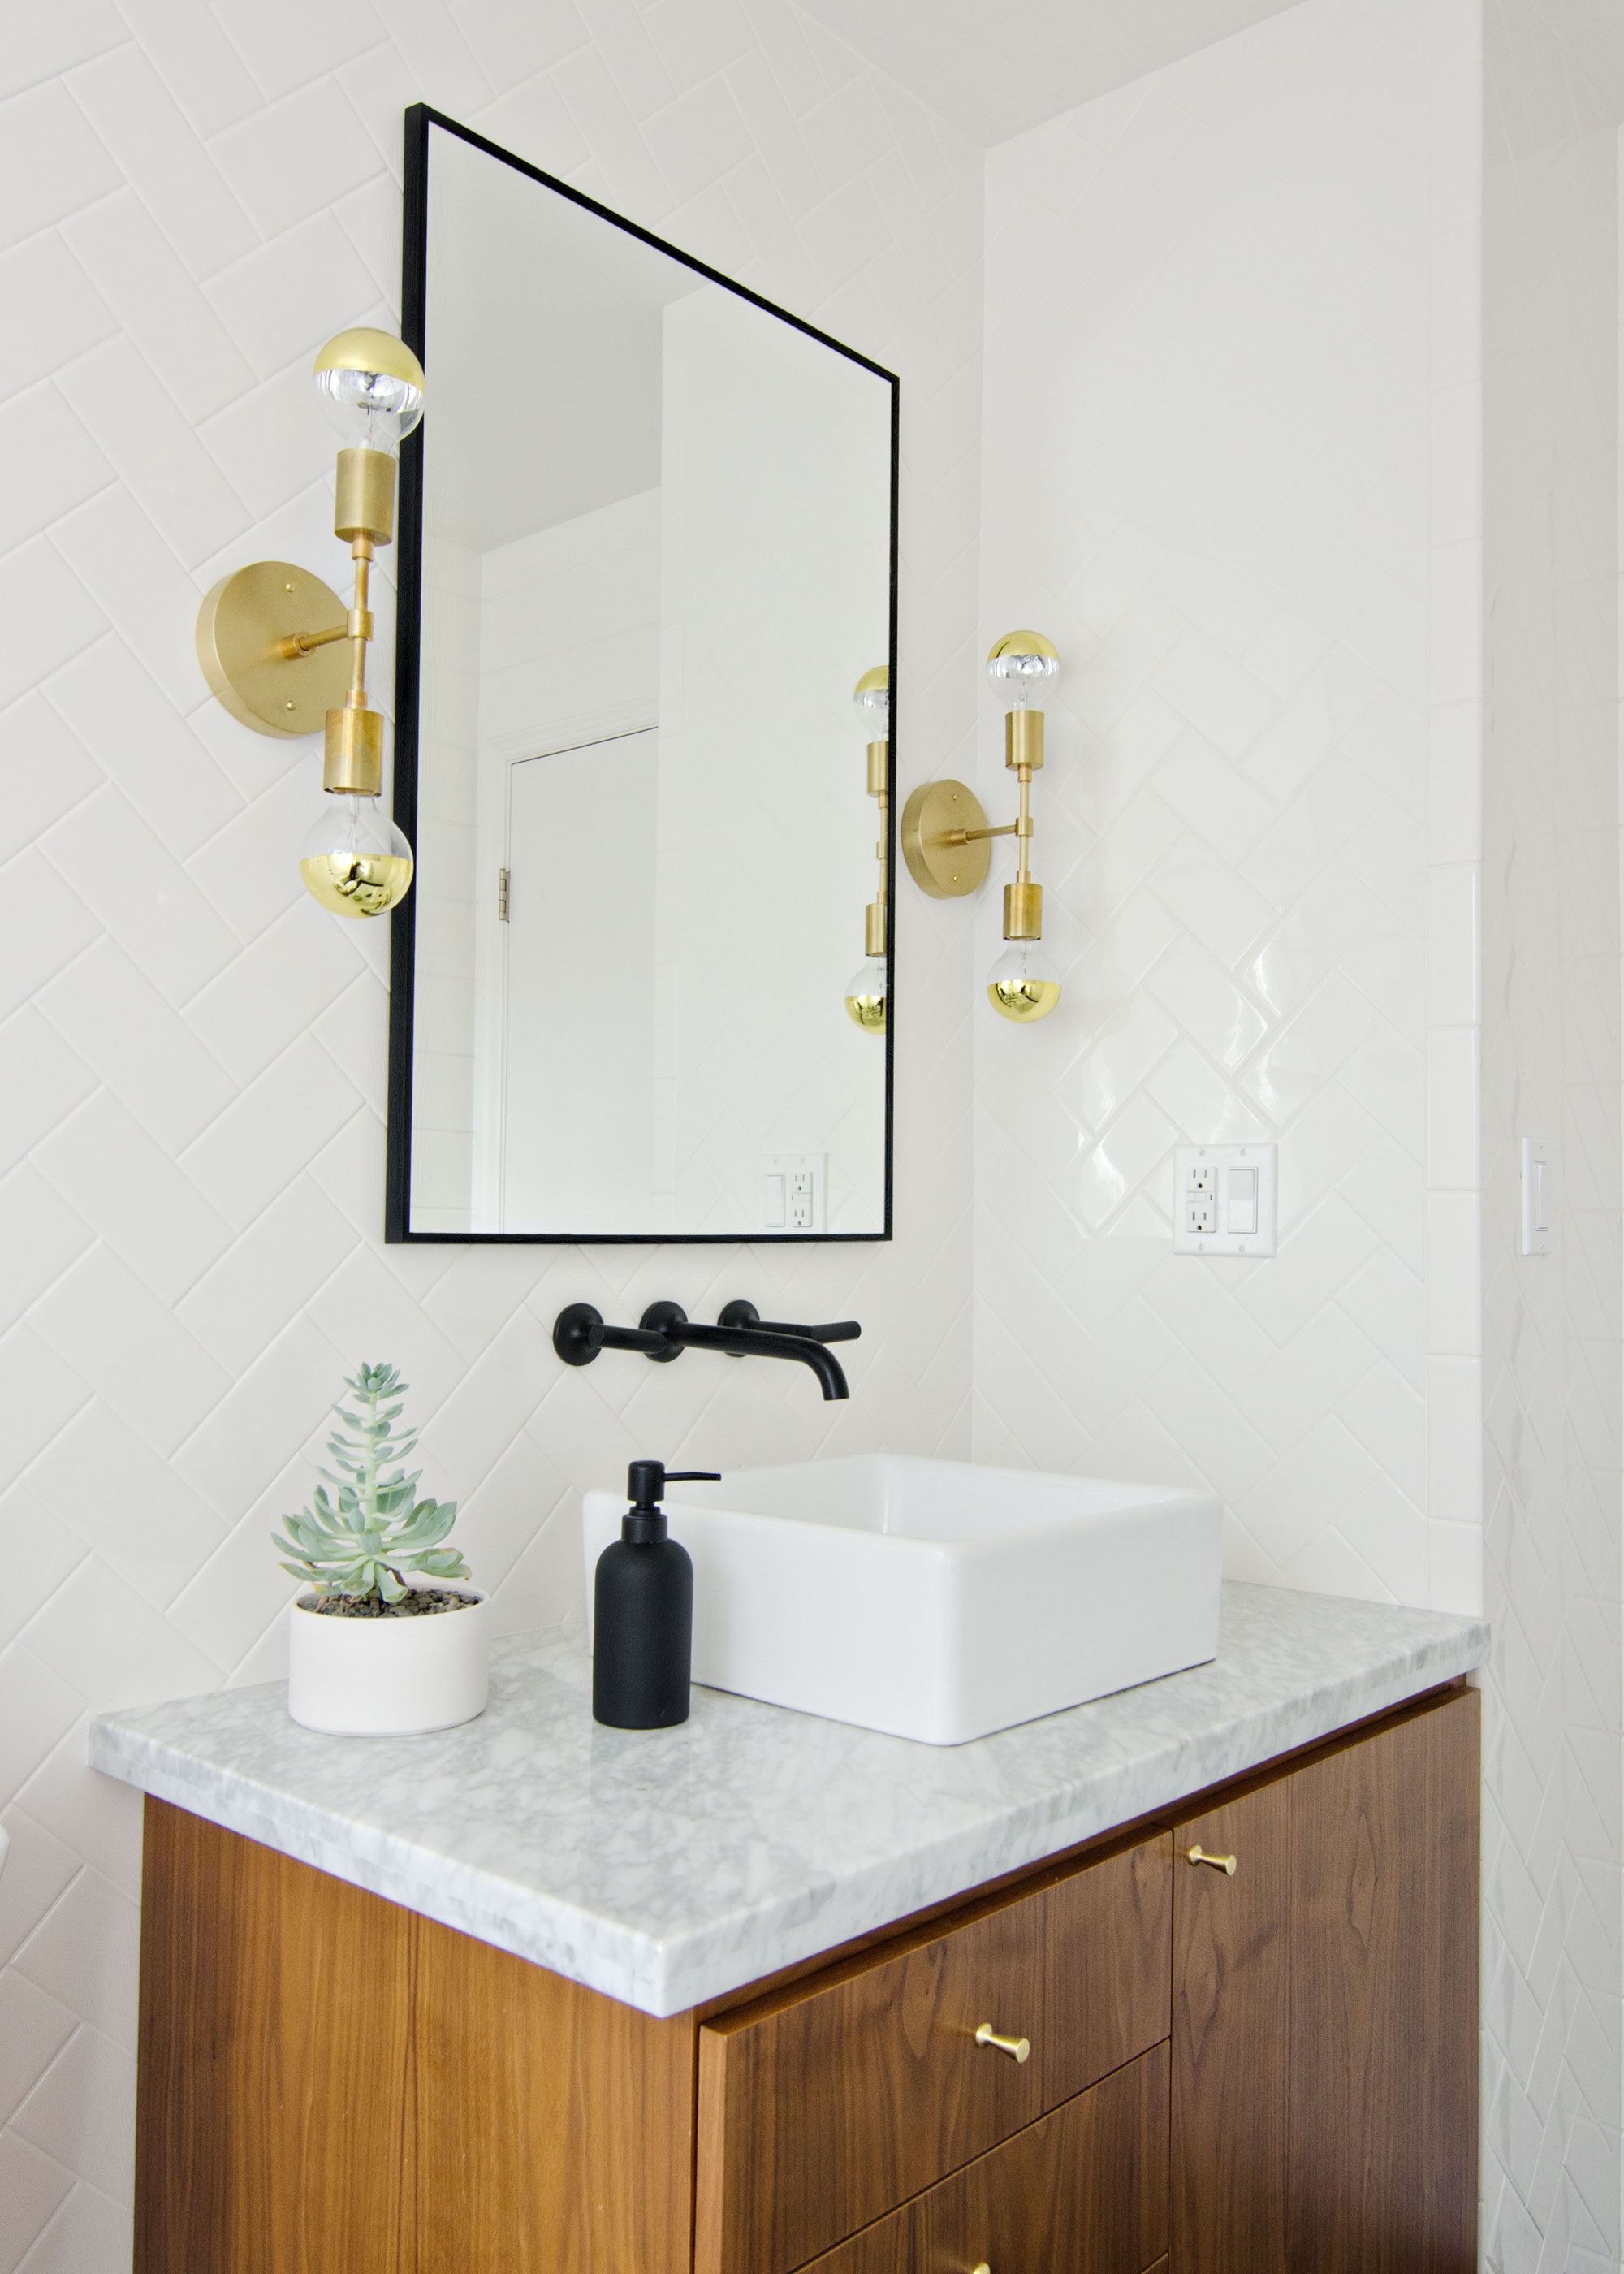 Charmant Black, White U0026 Walnut Bathroom With Black Faucet U0026 Brass Sconces //  BrittanyMakes